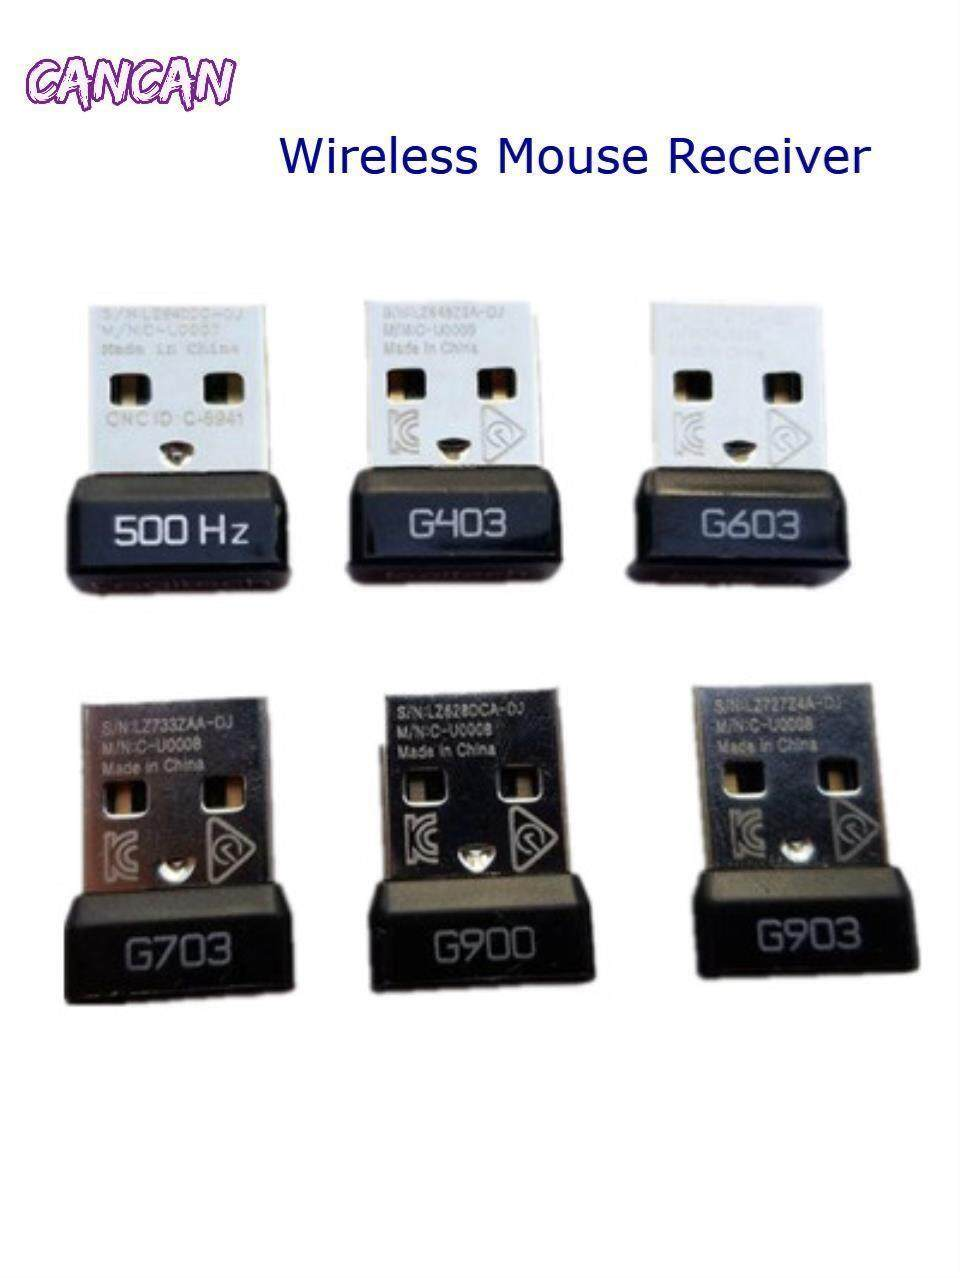 1 Pc Original Usb Receiver Usb Dongle Adapter Transmitter Lo gitech G903  G403 G900 G703 G603 G602 Wireless mouse Receiver